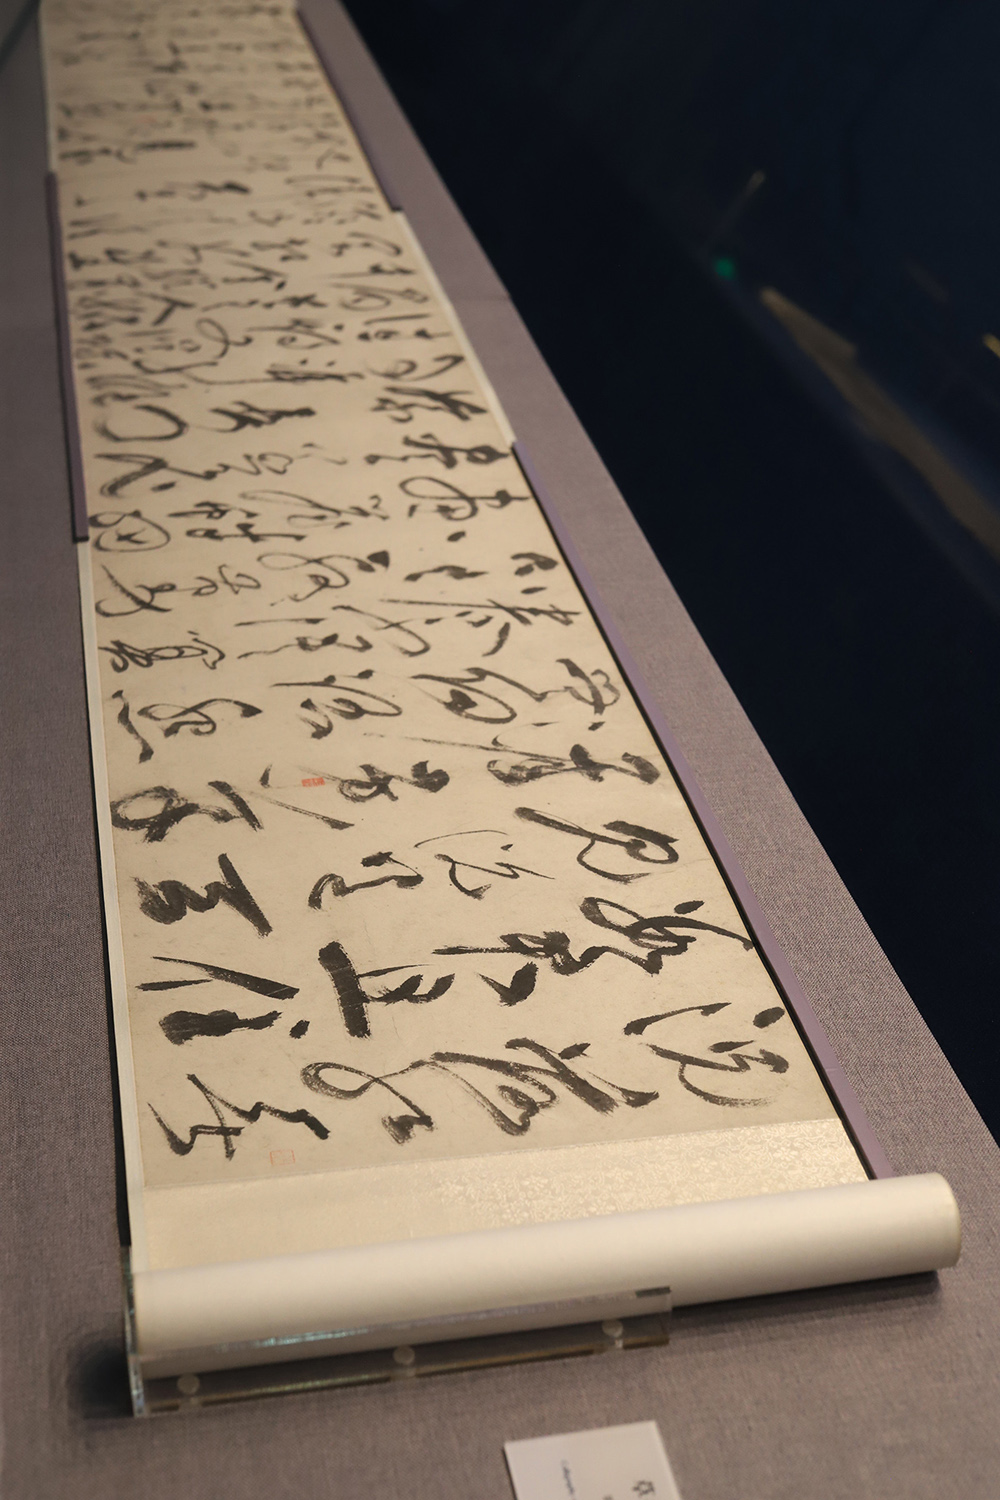 Zhu Yunming: Old Poems in Cursive Script